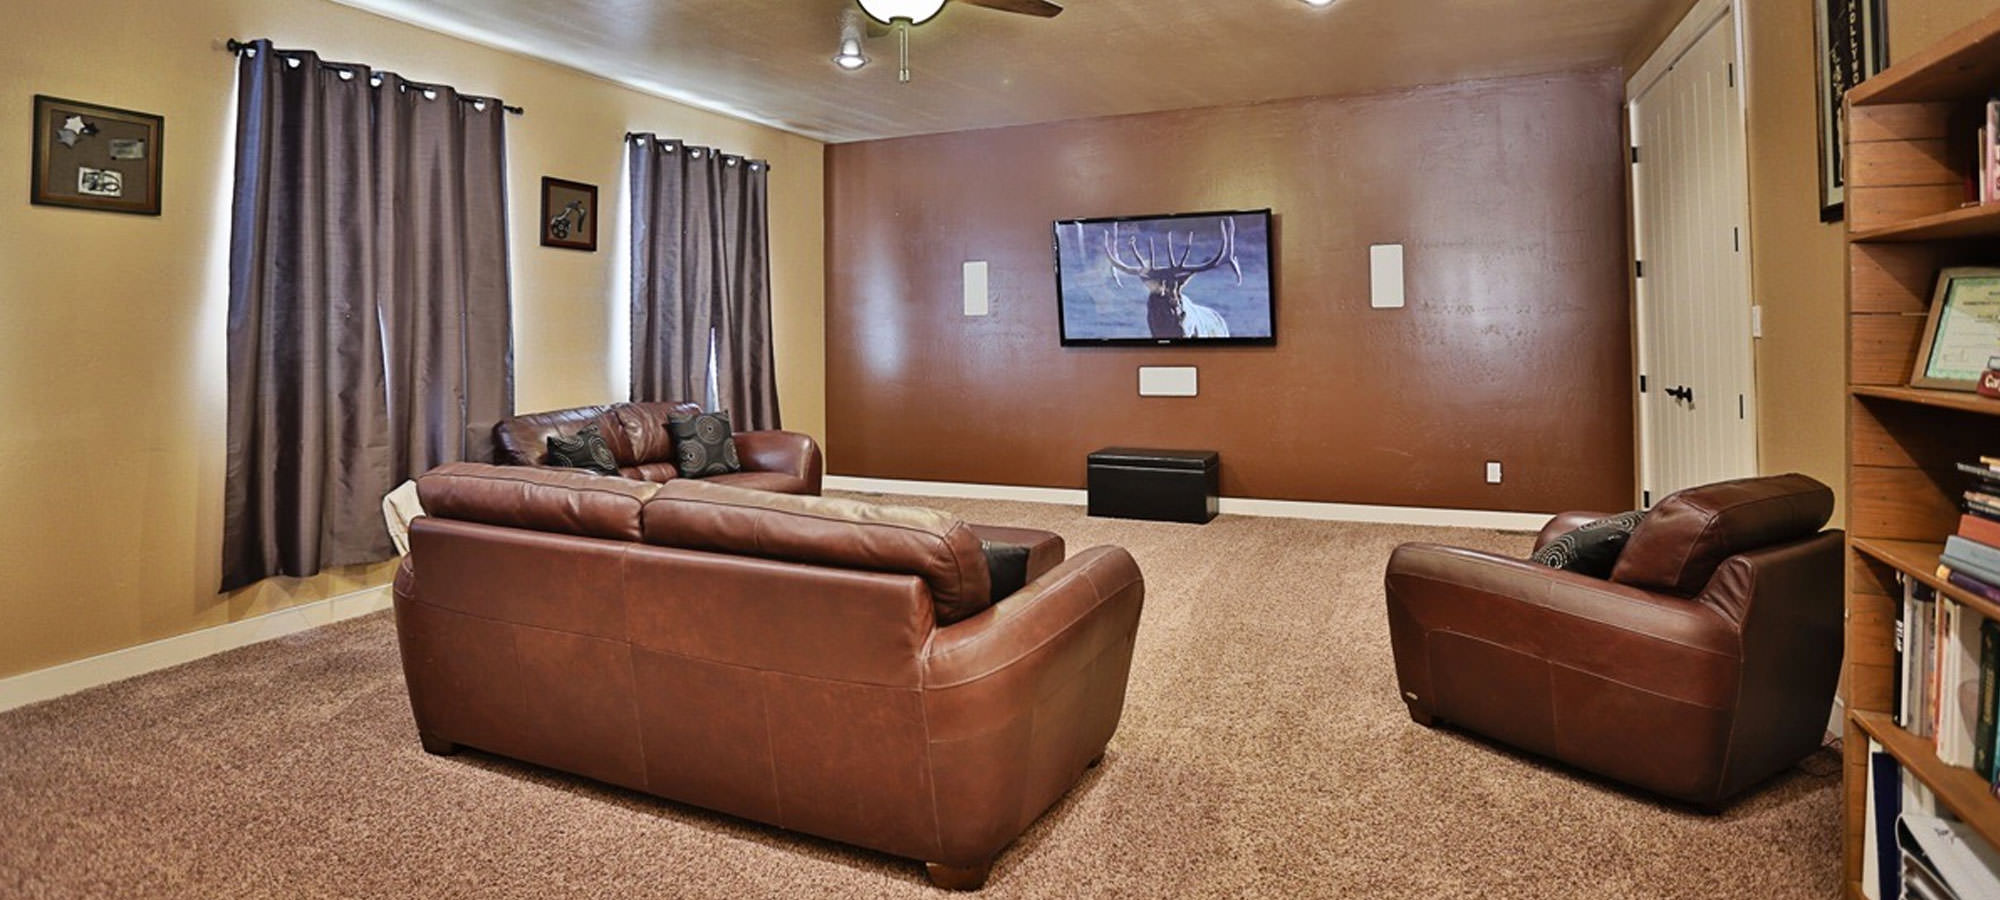 Bring the Theater Experience Into Your Home With Professionally Designed Furniture